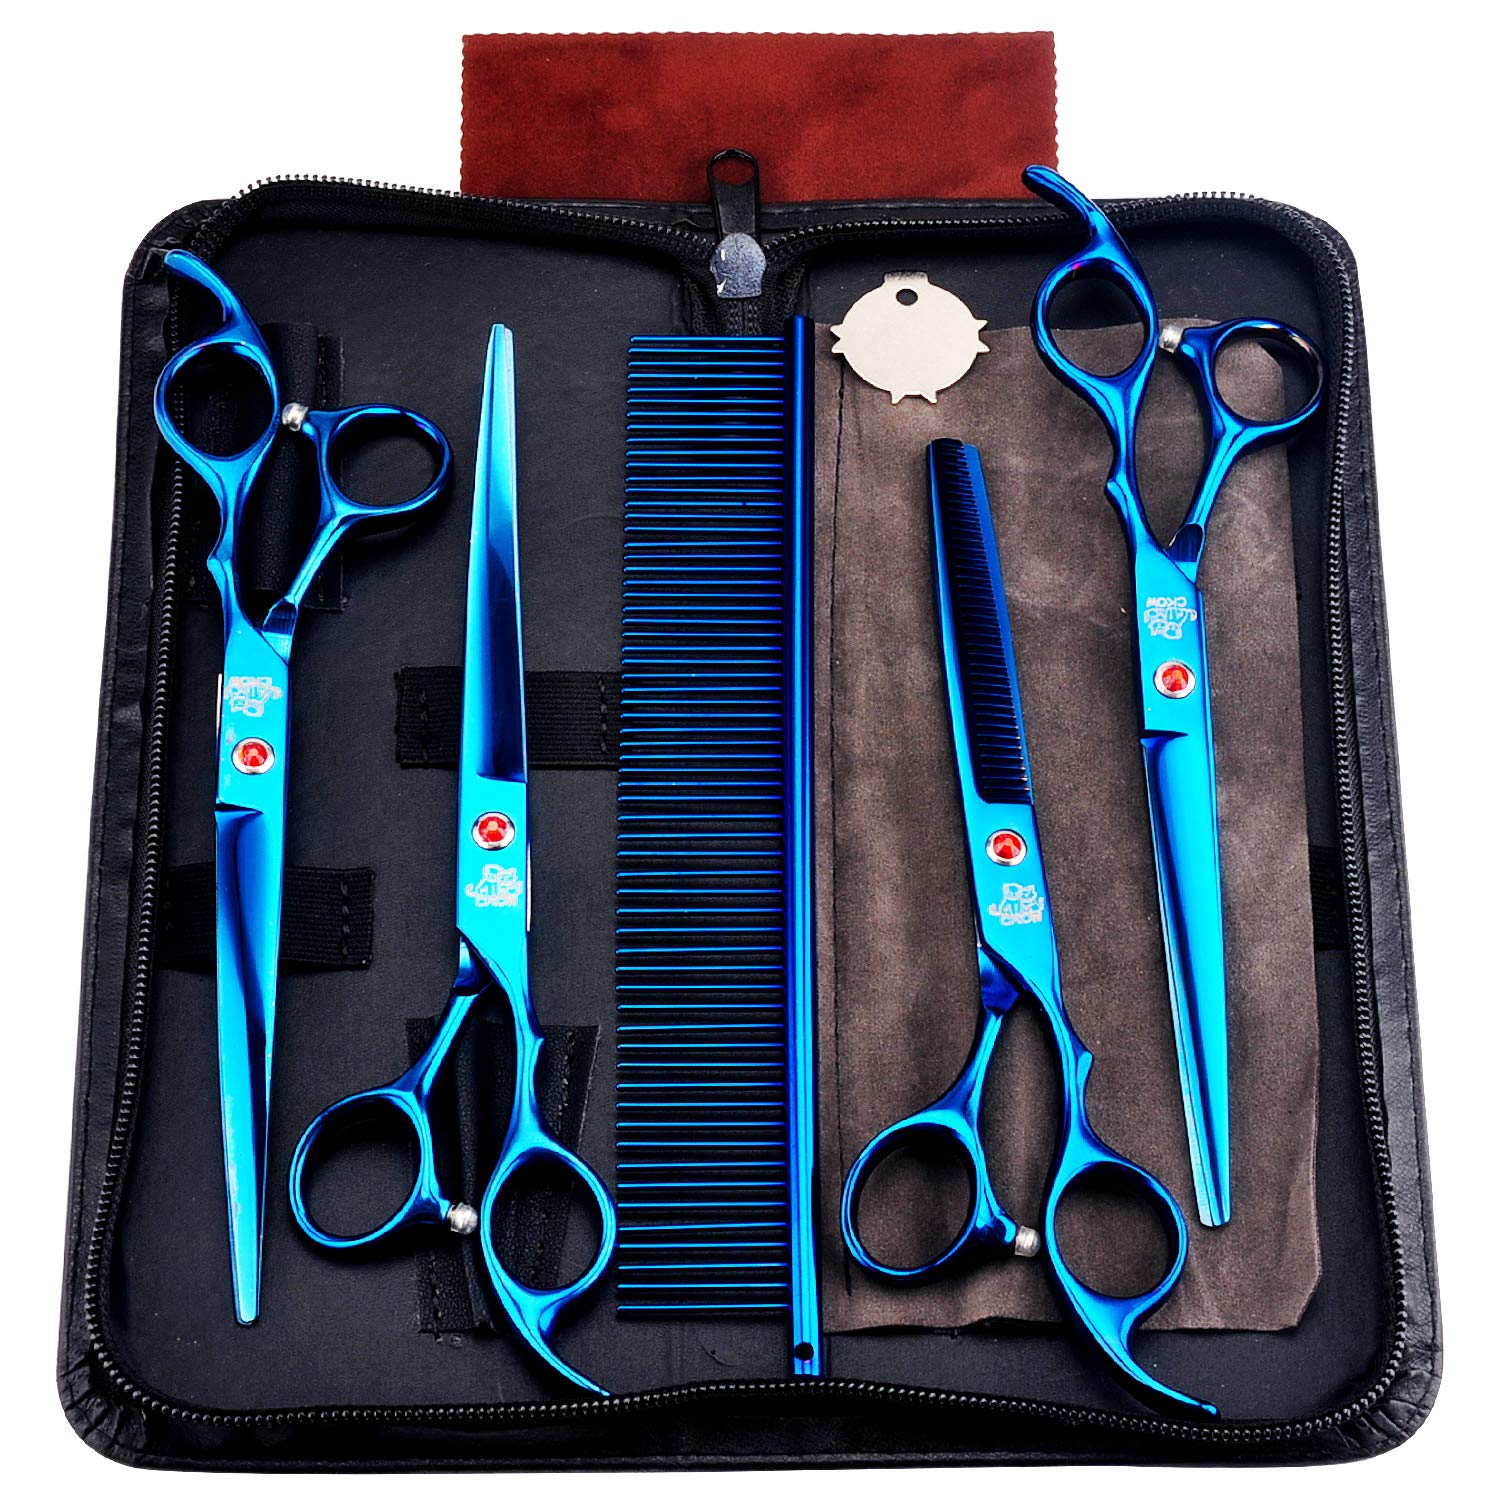 Professional Pet Grooming Scissors 7.0inch Stainless Steel Dog Grooming Scissors Kit for Dog Cat Grooming Shears Set by HKOW